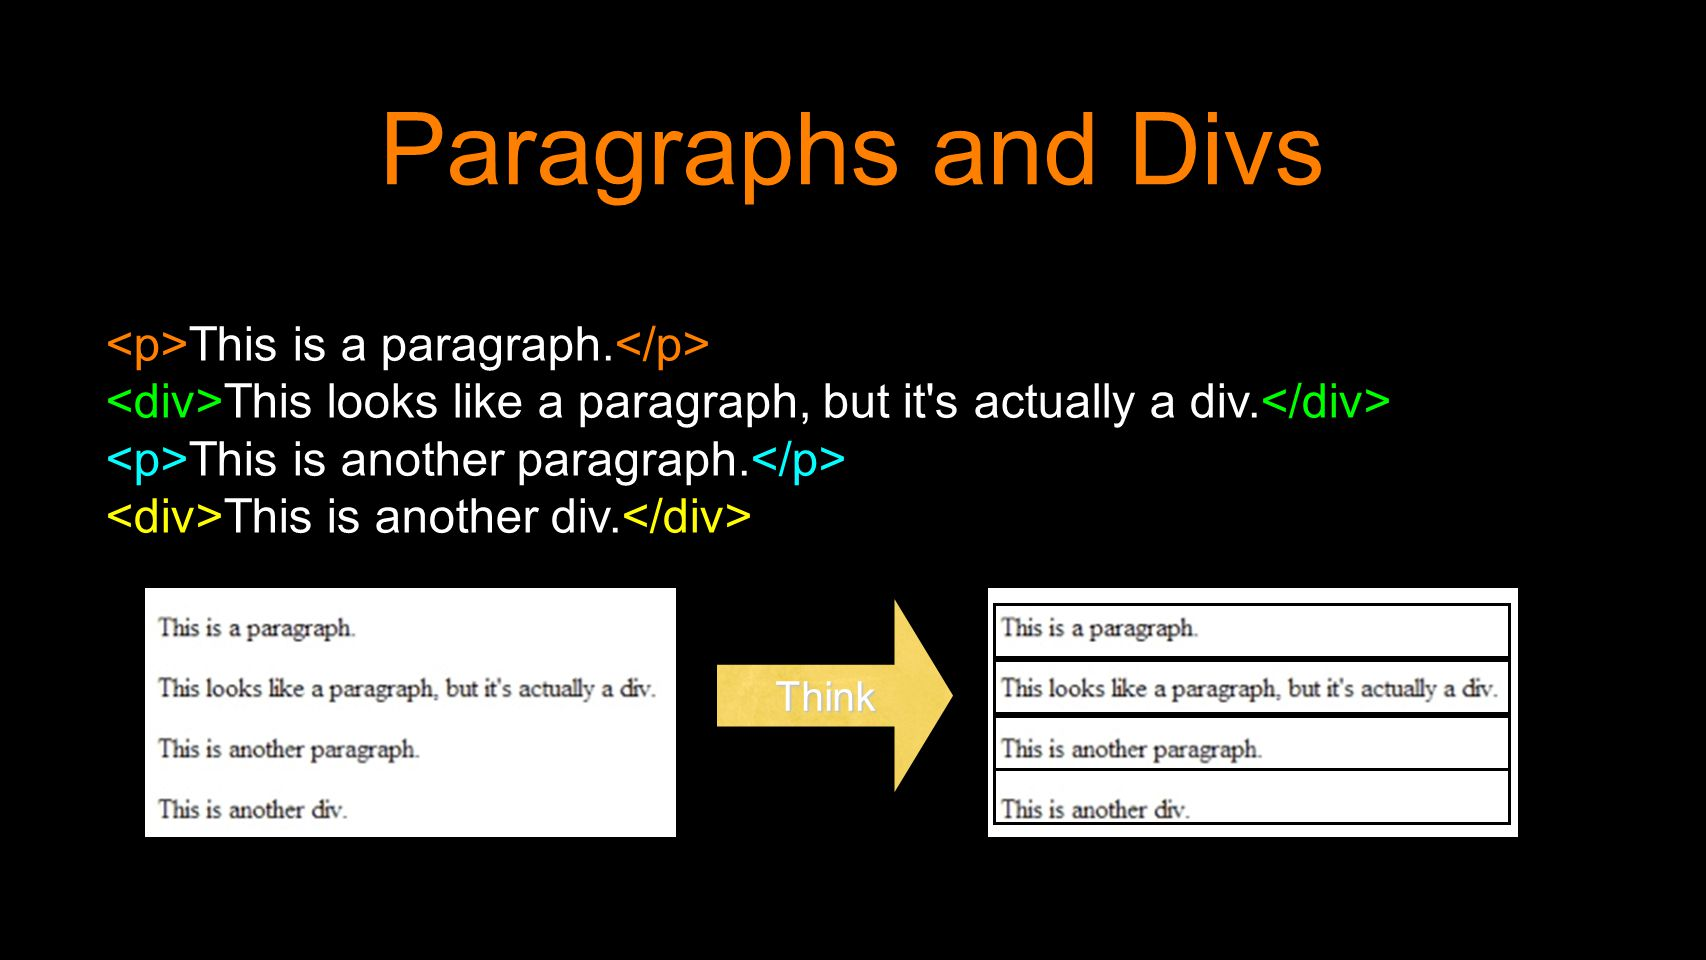 Paragraphs and Divs This is a paragraph. This looks like a paragraph, but it s actually a div.